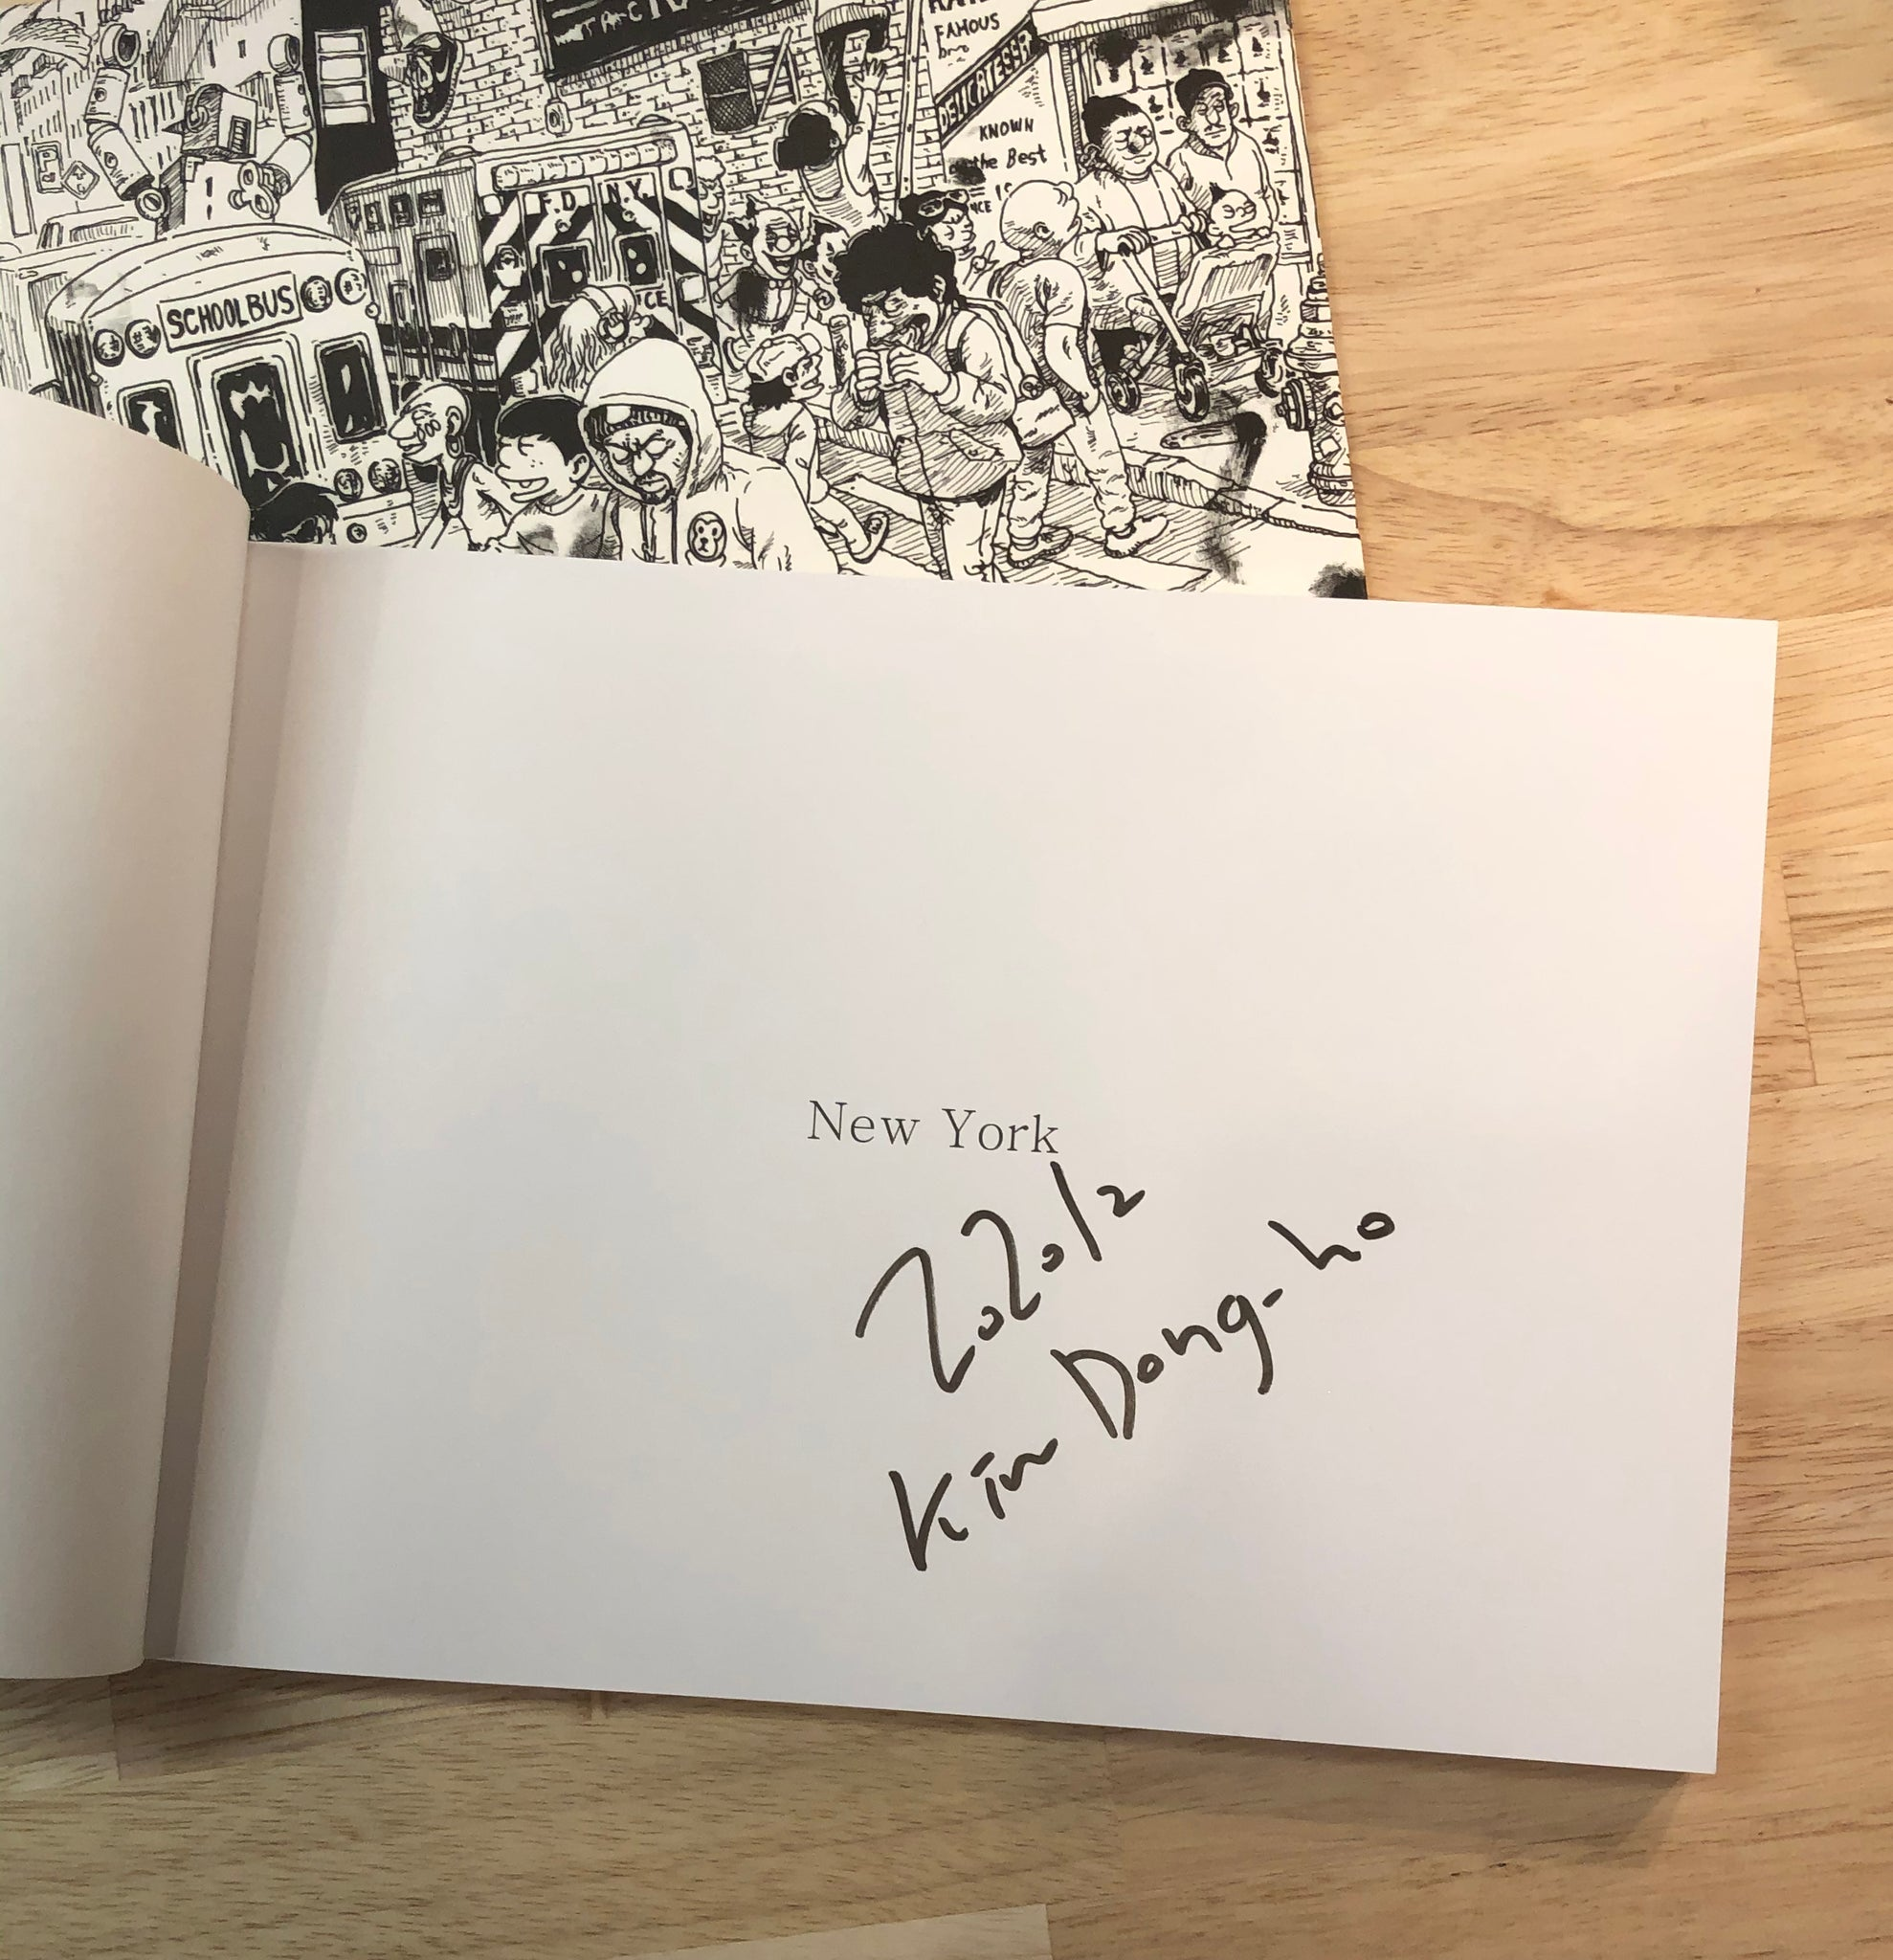 Dongho Kim's New York Sketchbook Collection